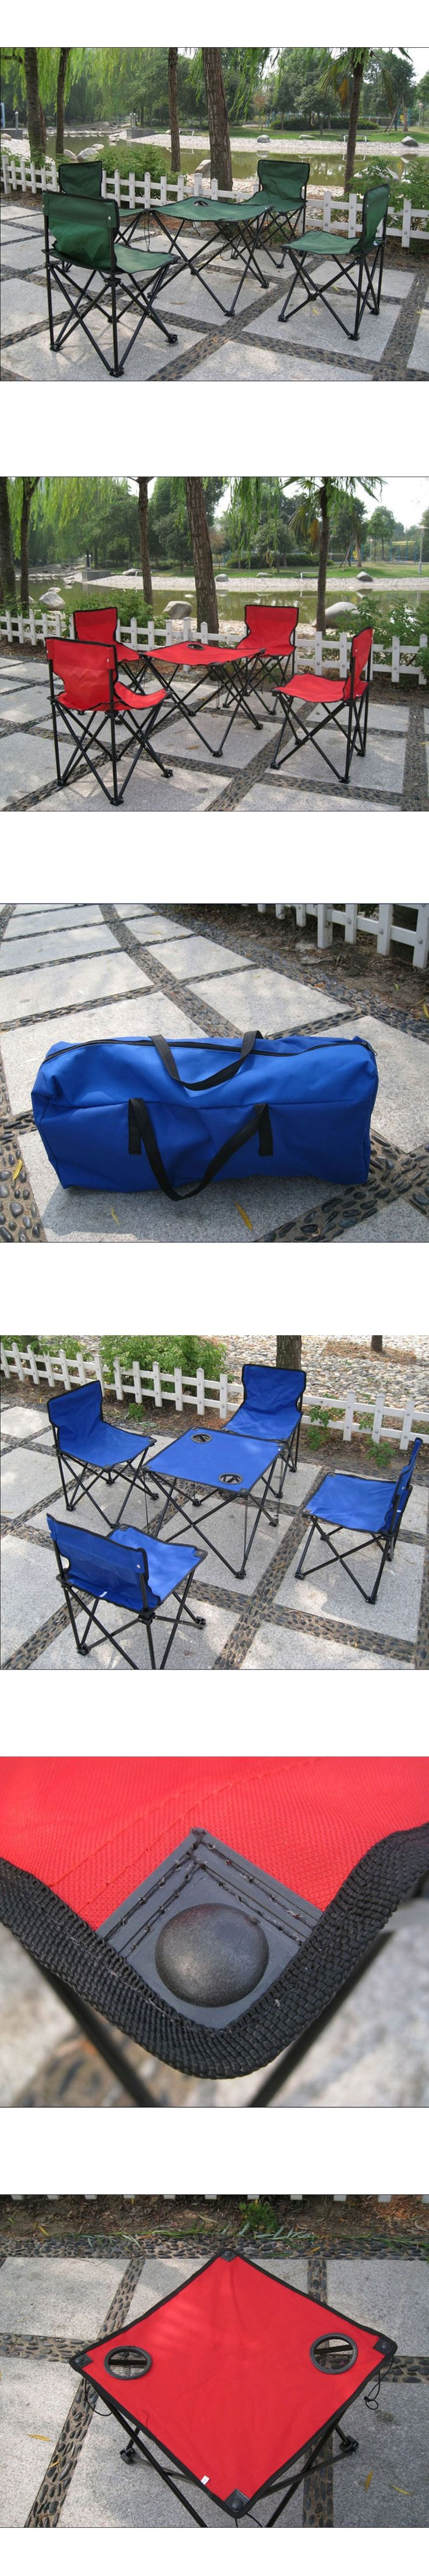 Best 25 Picnic chairs ideas on Pinterest